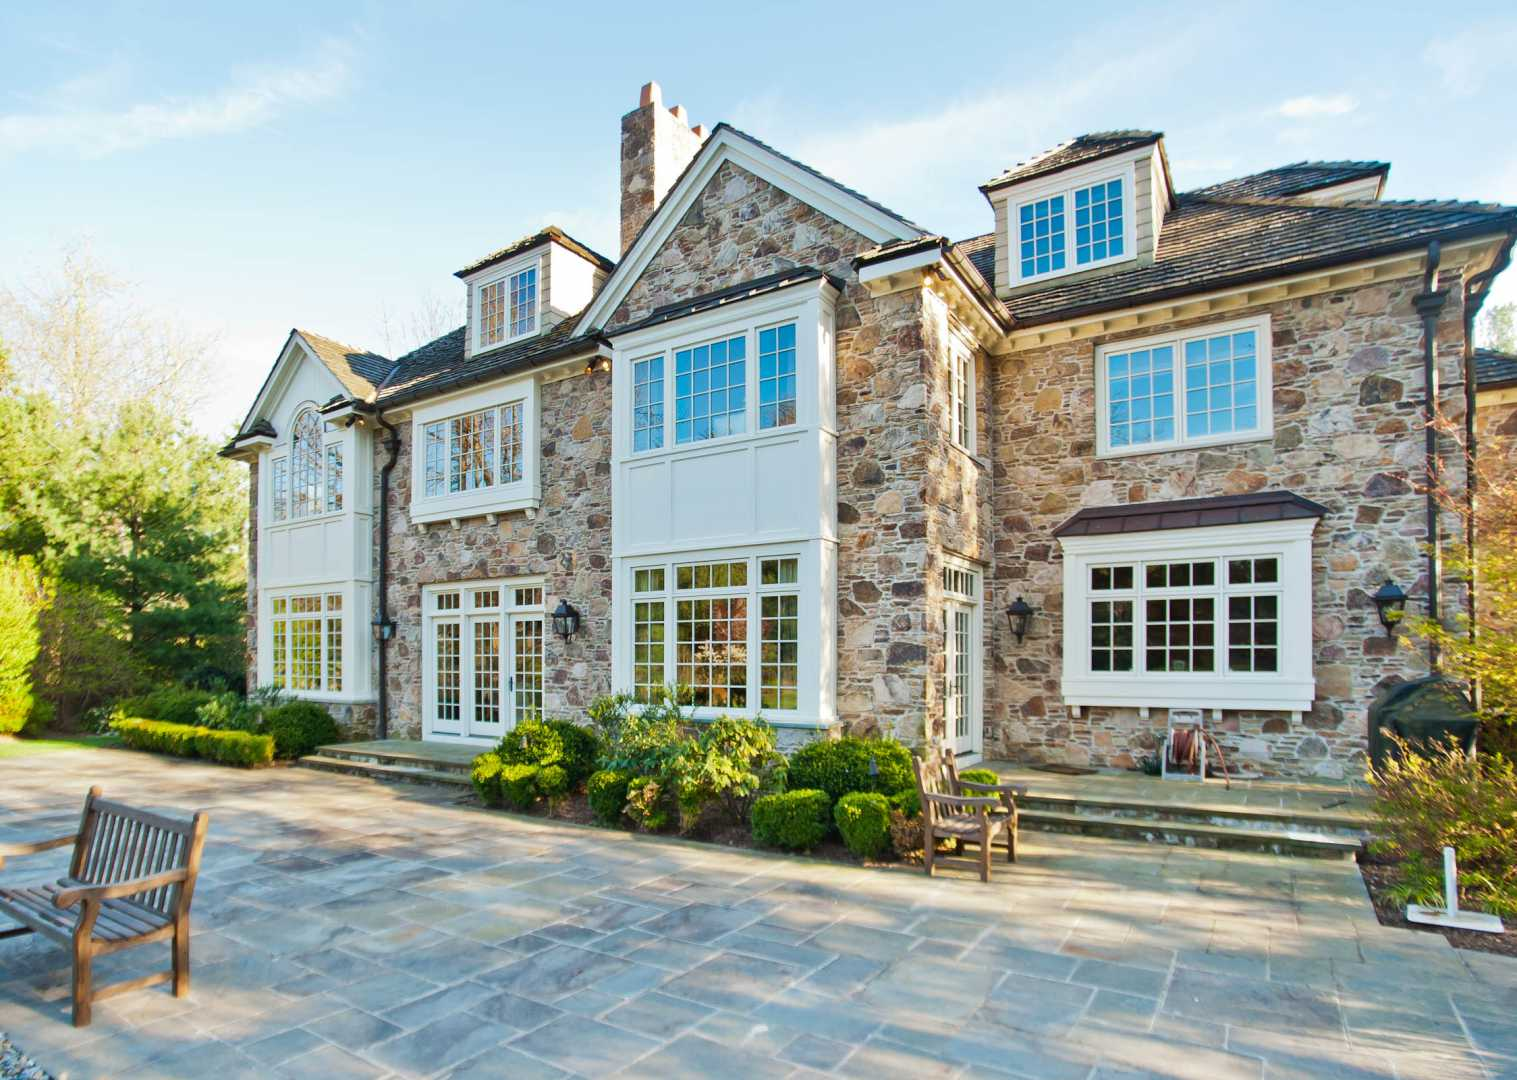 Short Hills (NJ) United States  city pictures gallery : ... Maintained Stone Manor in Short Hills, NJ LuxuryRealEstate.com